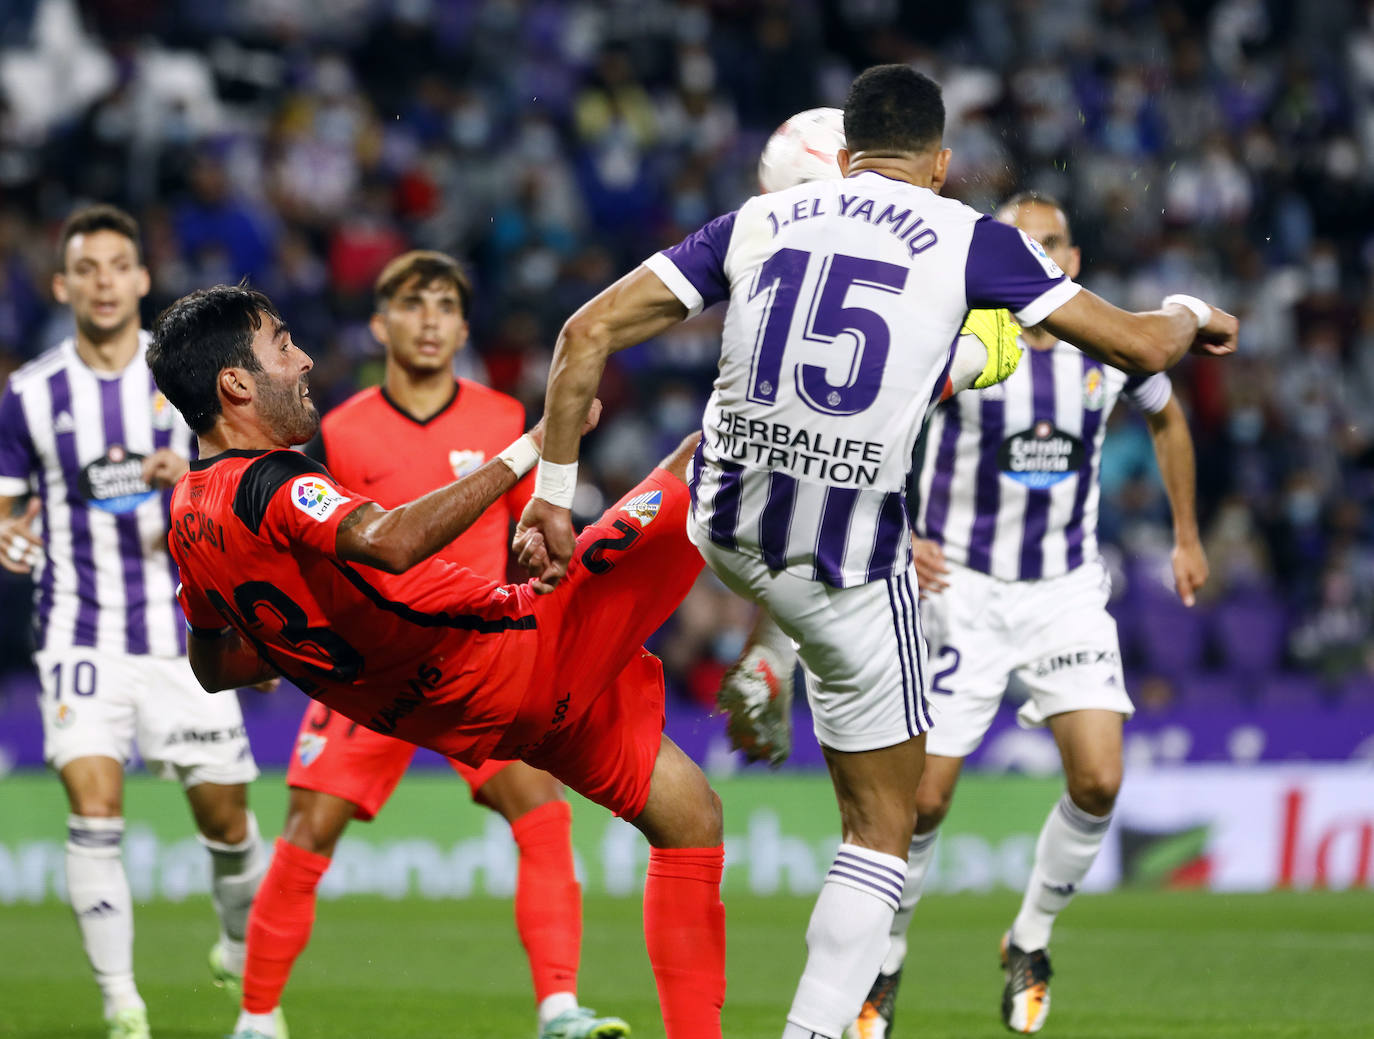 Valuable draw for Malaga in Valladolid (1-1)